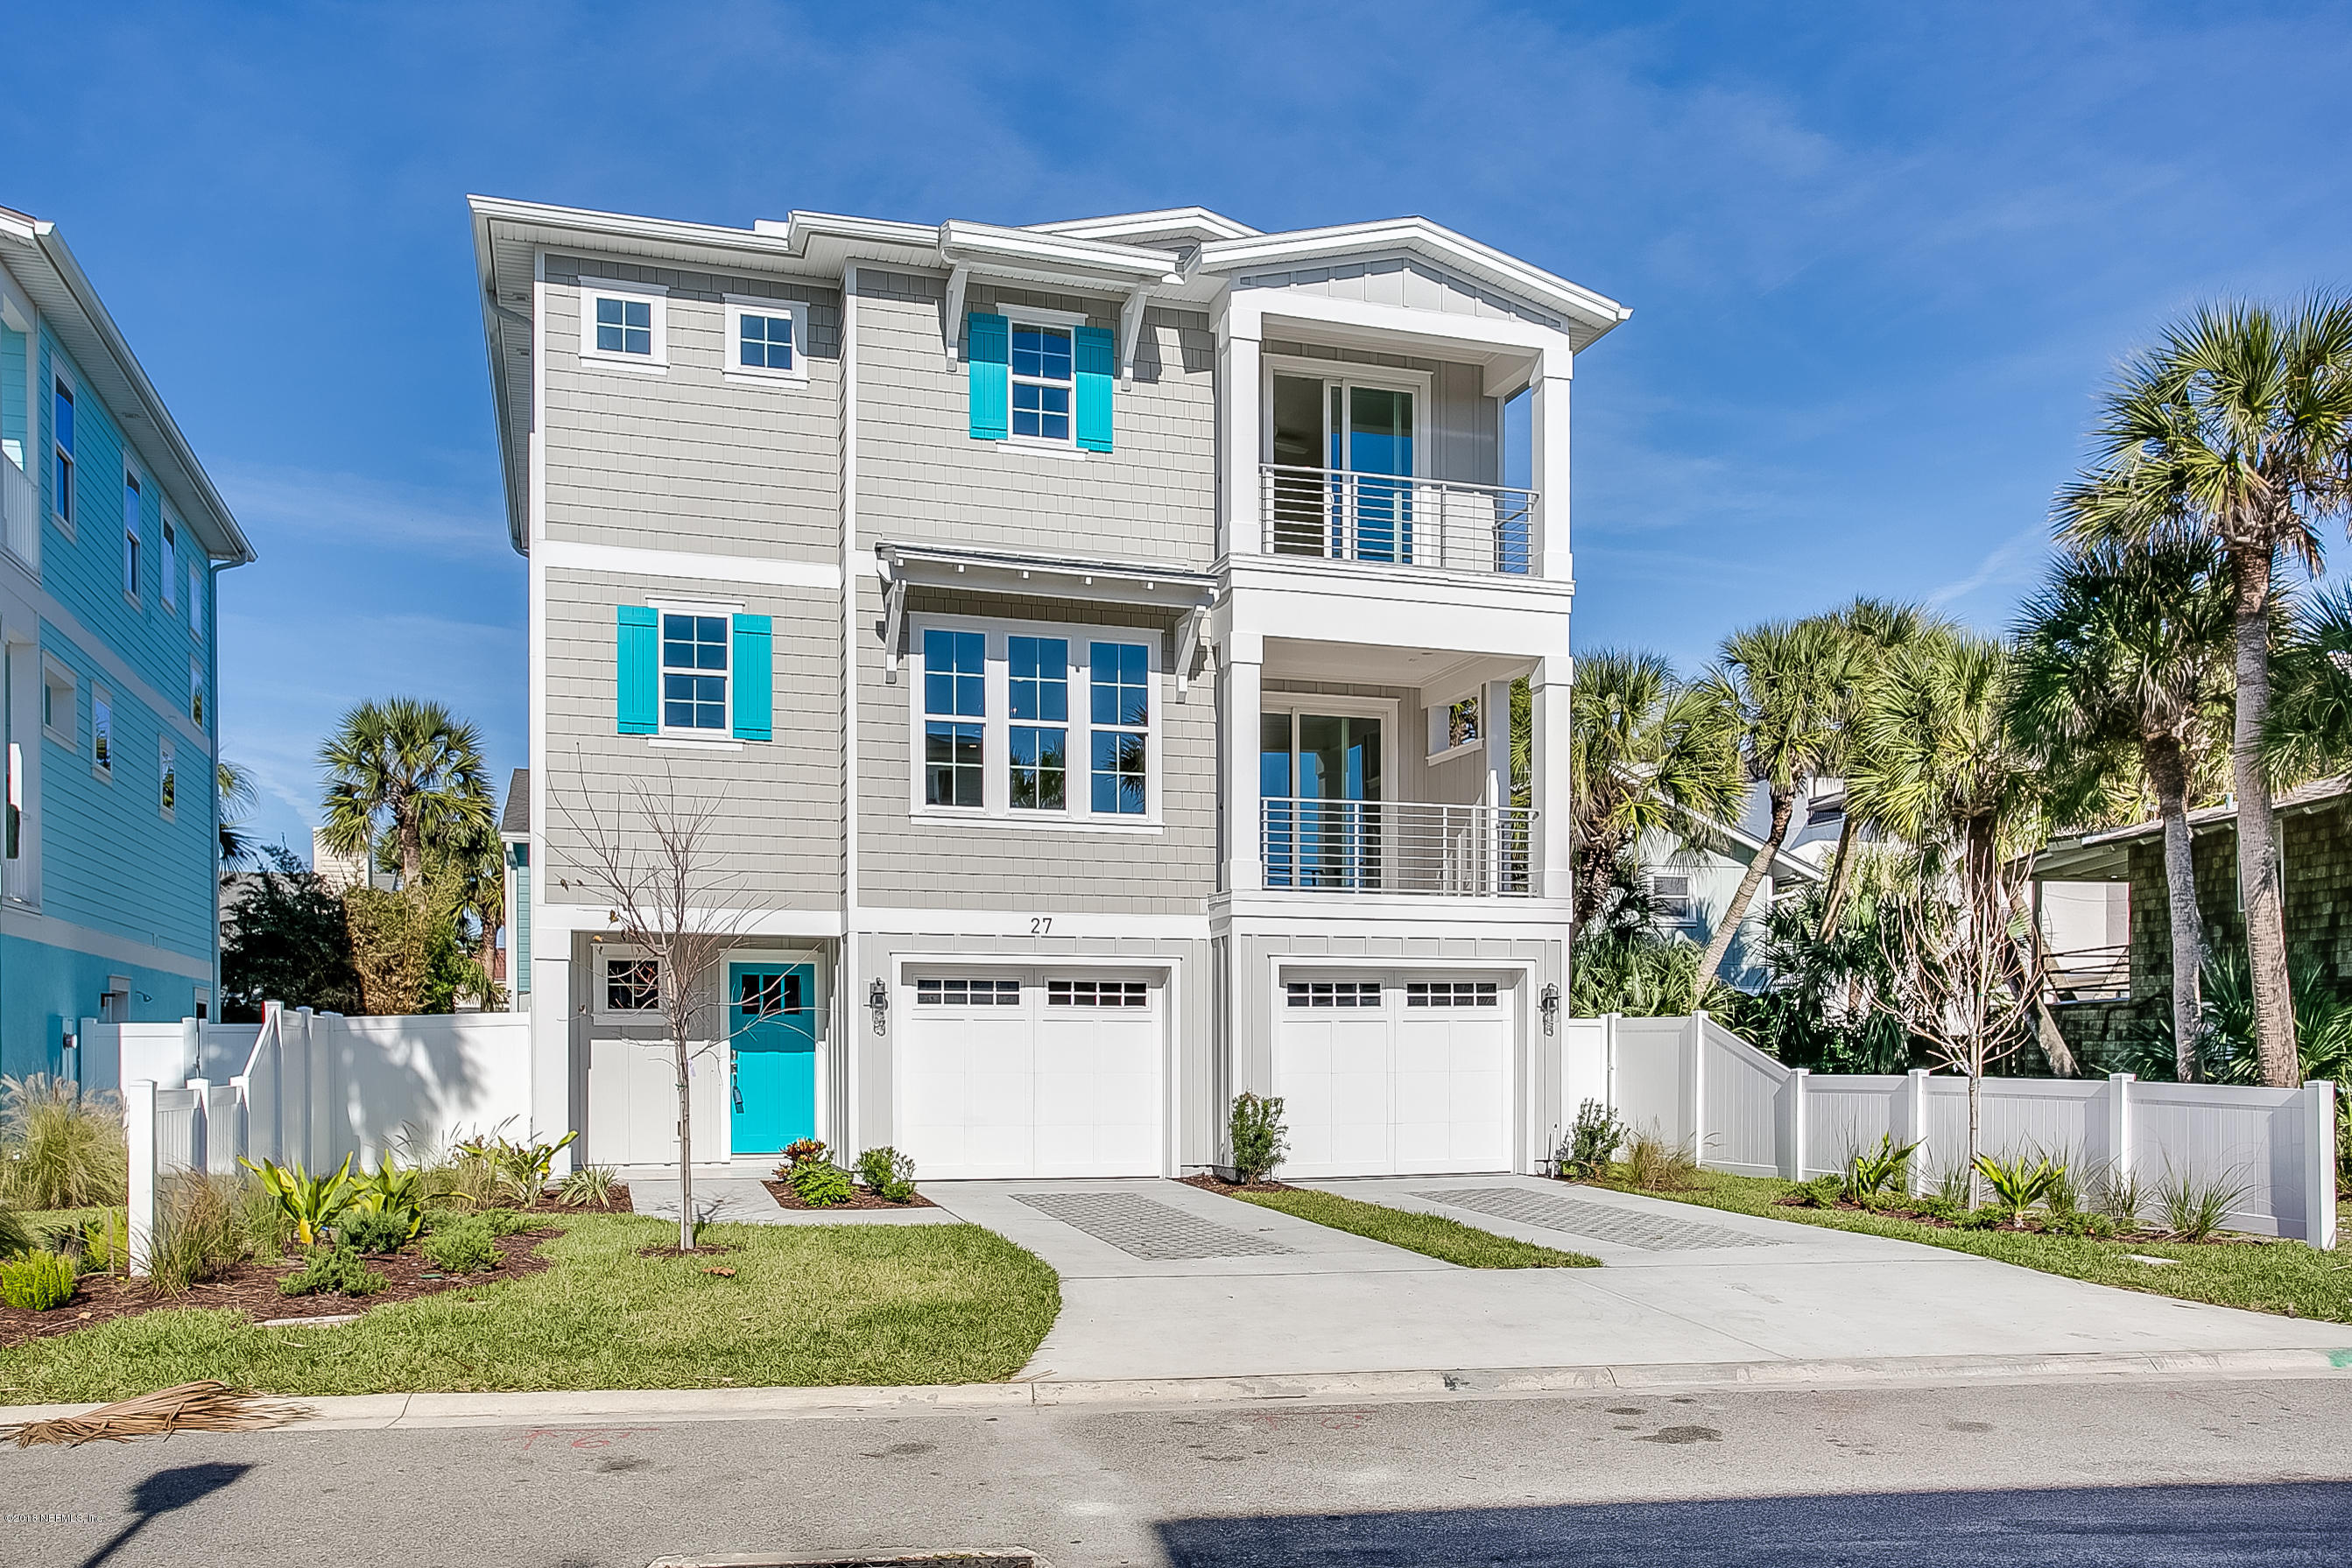 27  26TH AVE S, Jacksonville Beach, Florida